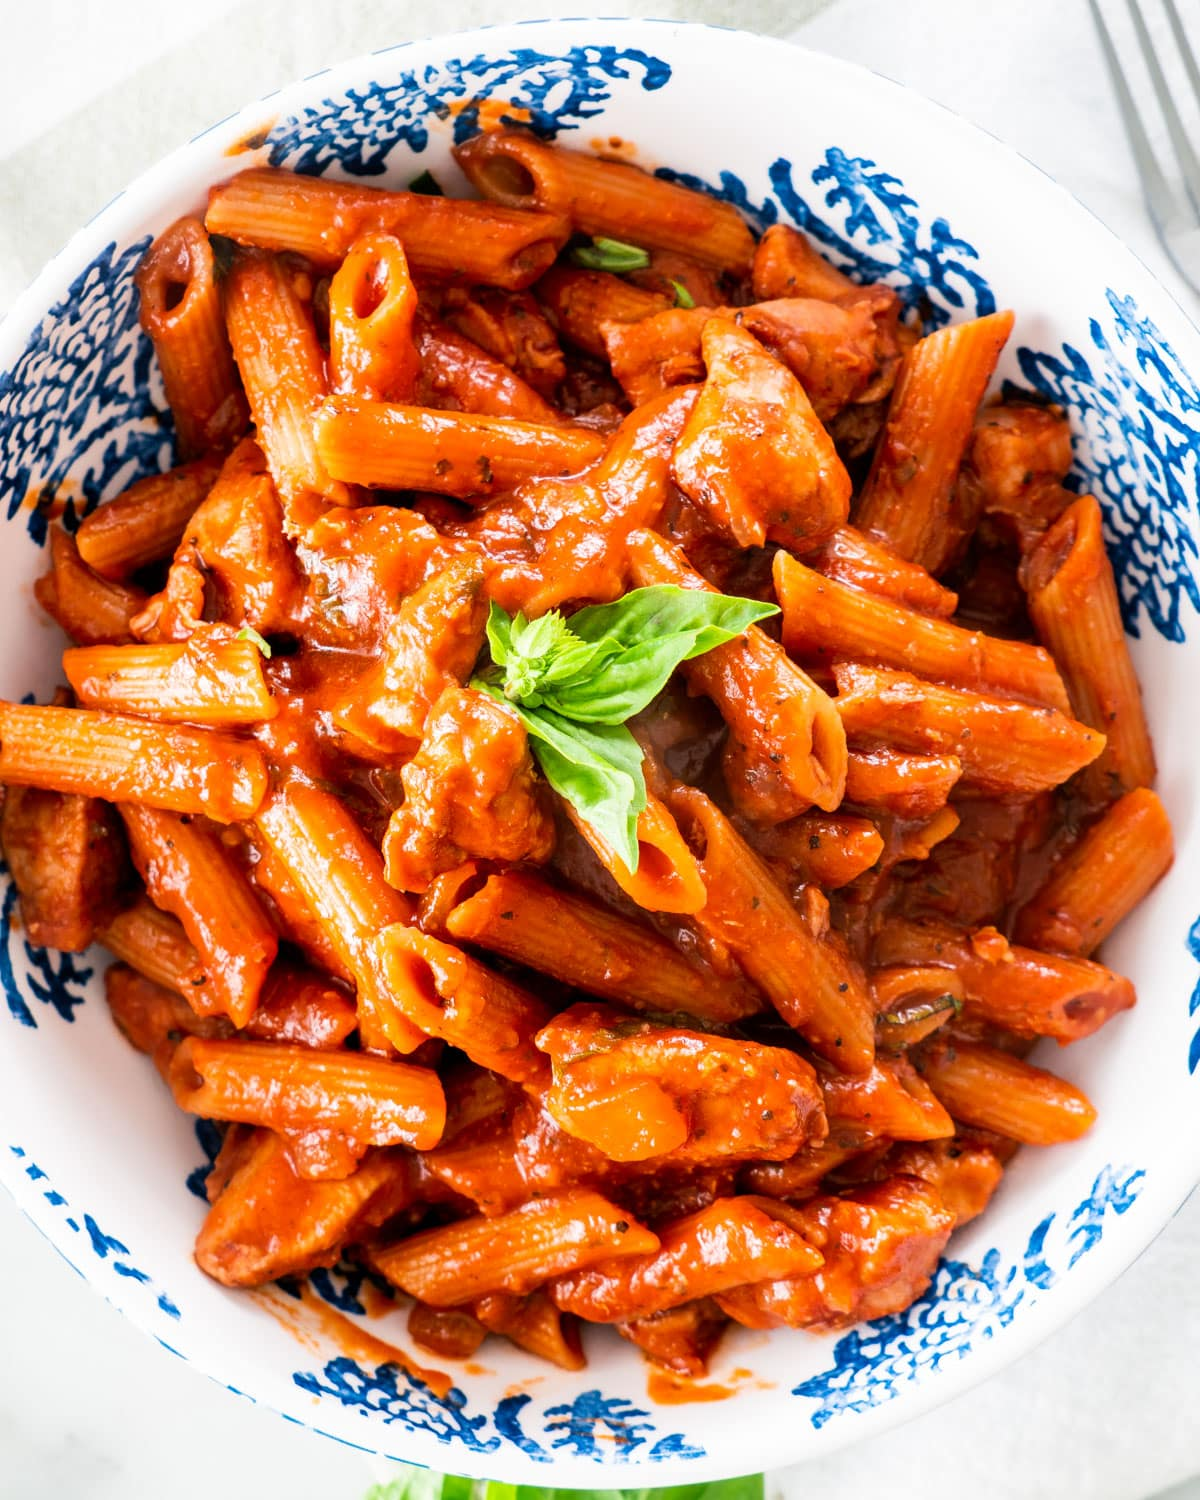 overhead shot of a portion of chicken penne arrabbiata in a white and blue plate garnished with a couple basil leaves